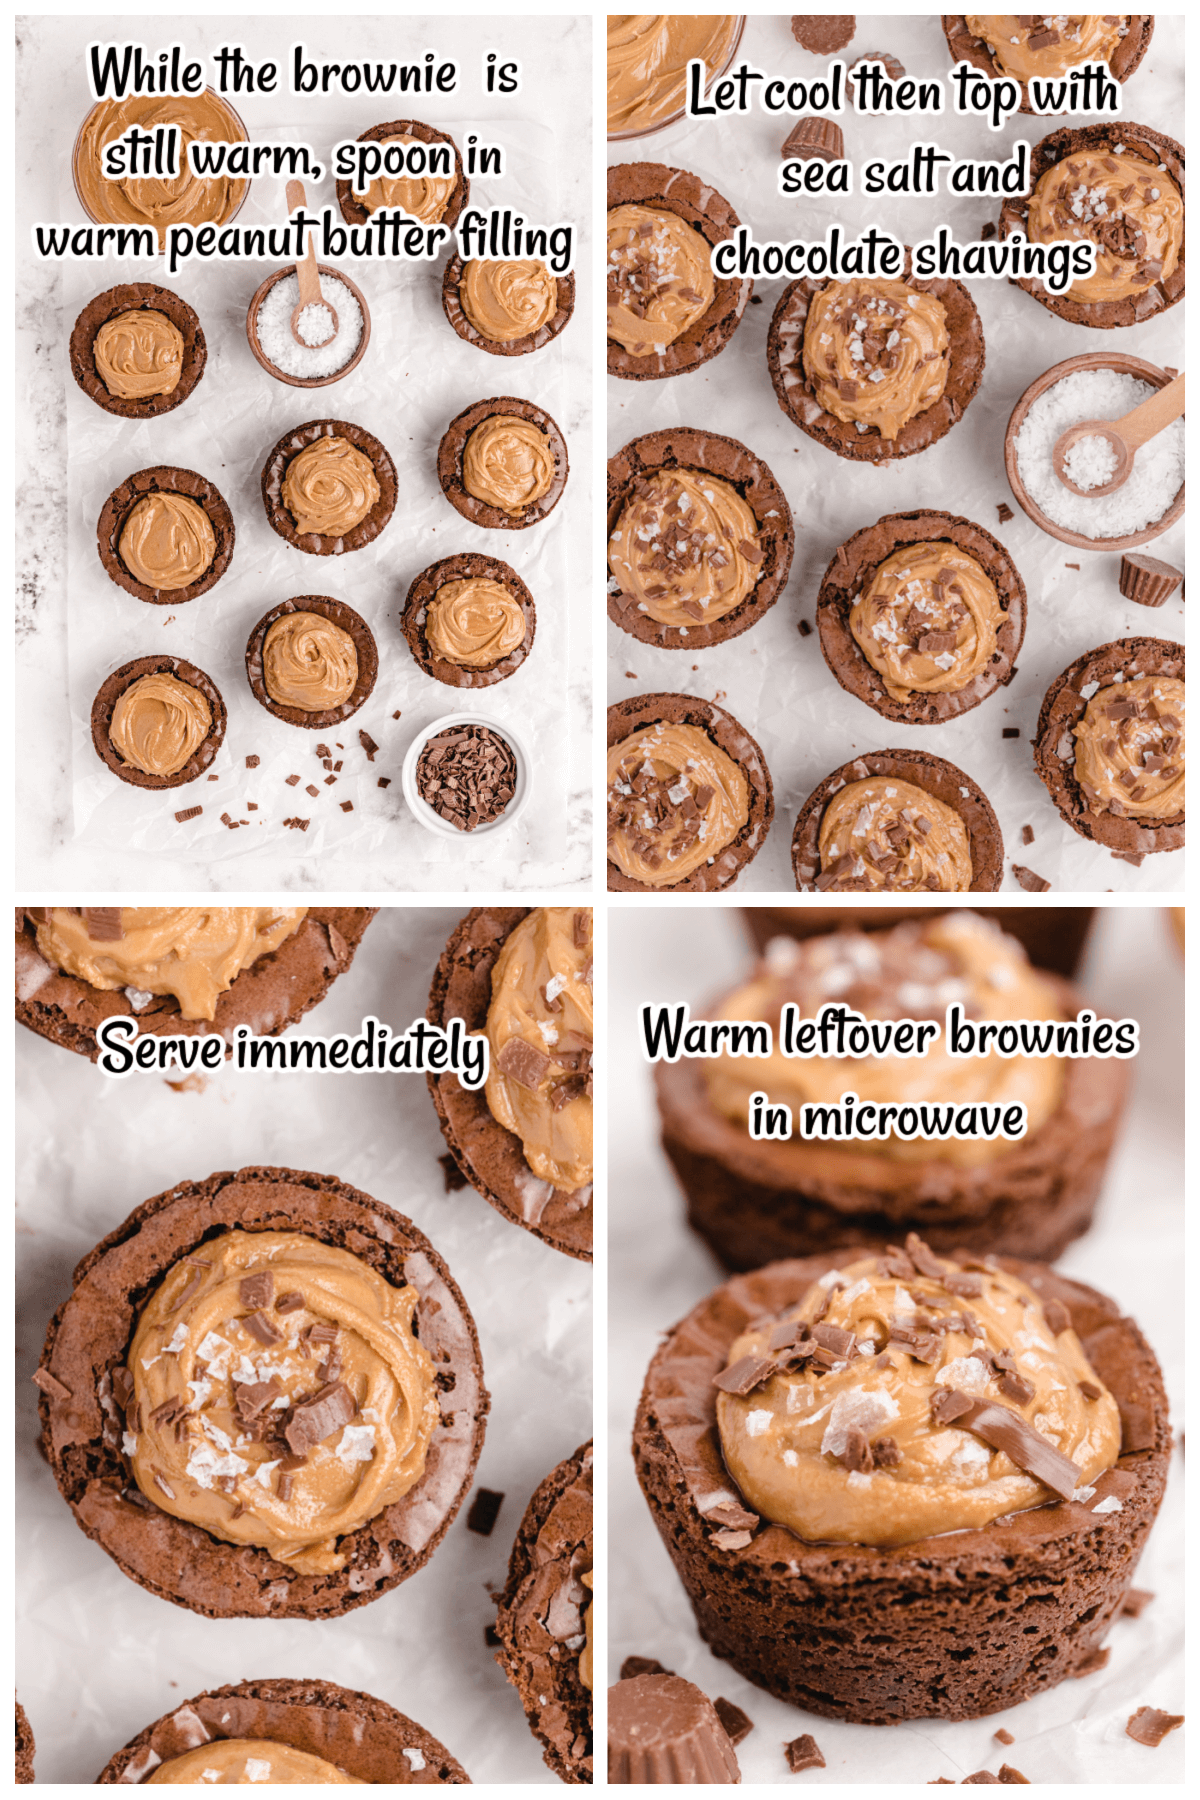 The last four steps in making the Brownie and peanut butter recipe.